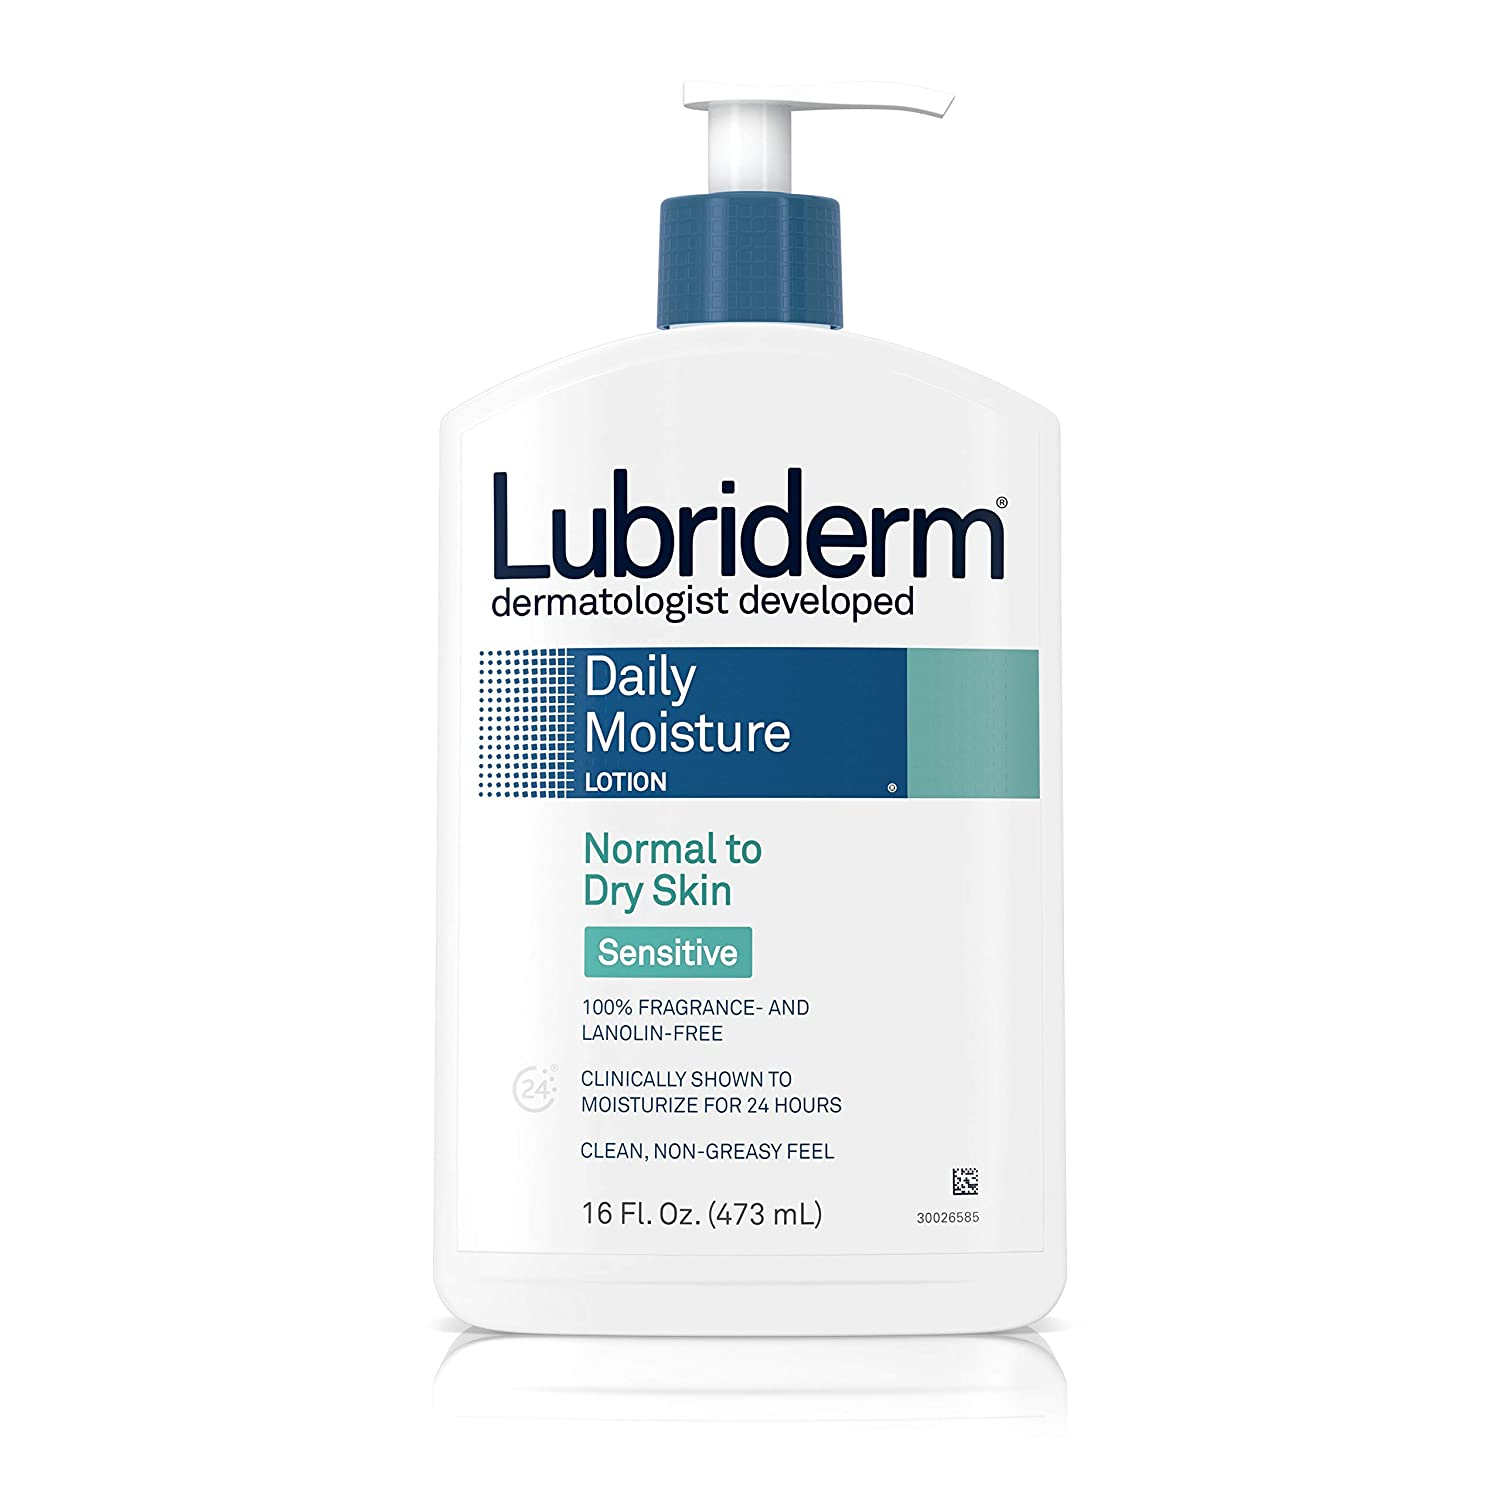 Lubriderm Daily Moisture Body Lotion for Sensitive, Dry Skin, Enriched with Vitamin B5, Dye and Lanolin Free, Unscented and Non-Greasy, 16 fl. oz